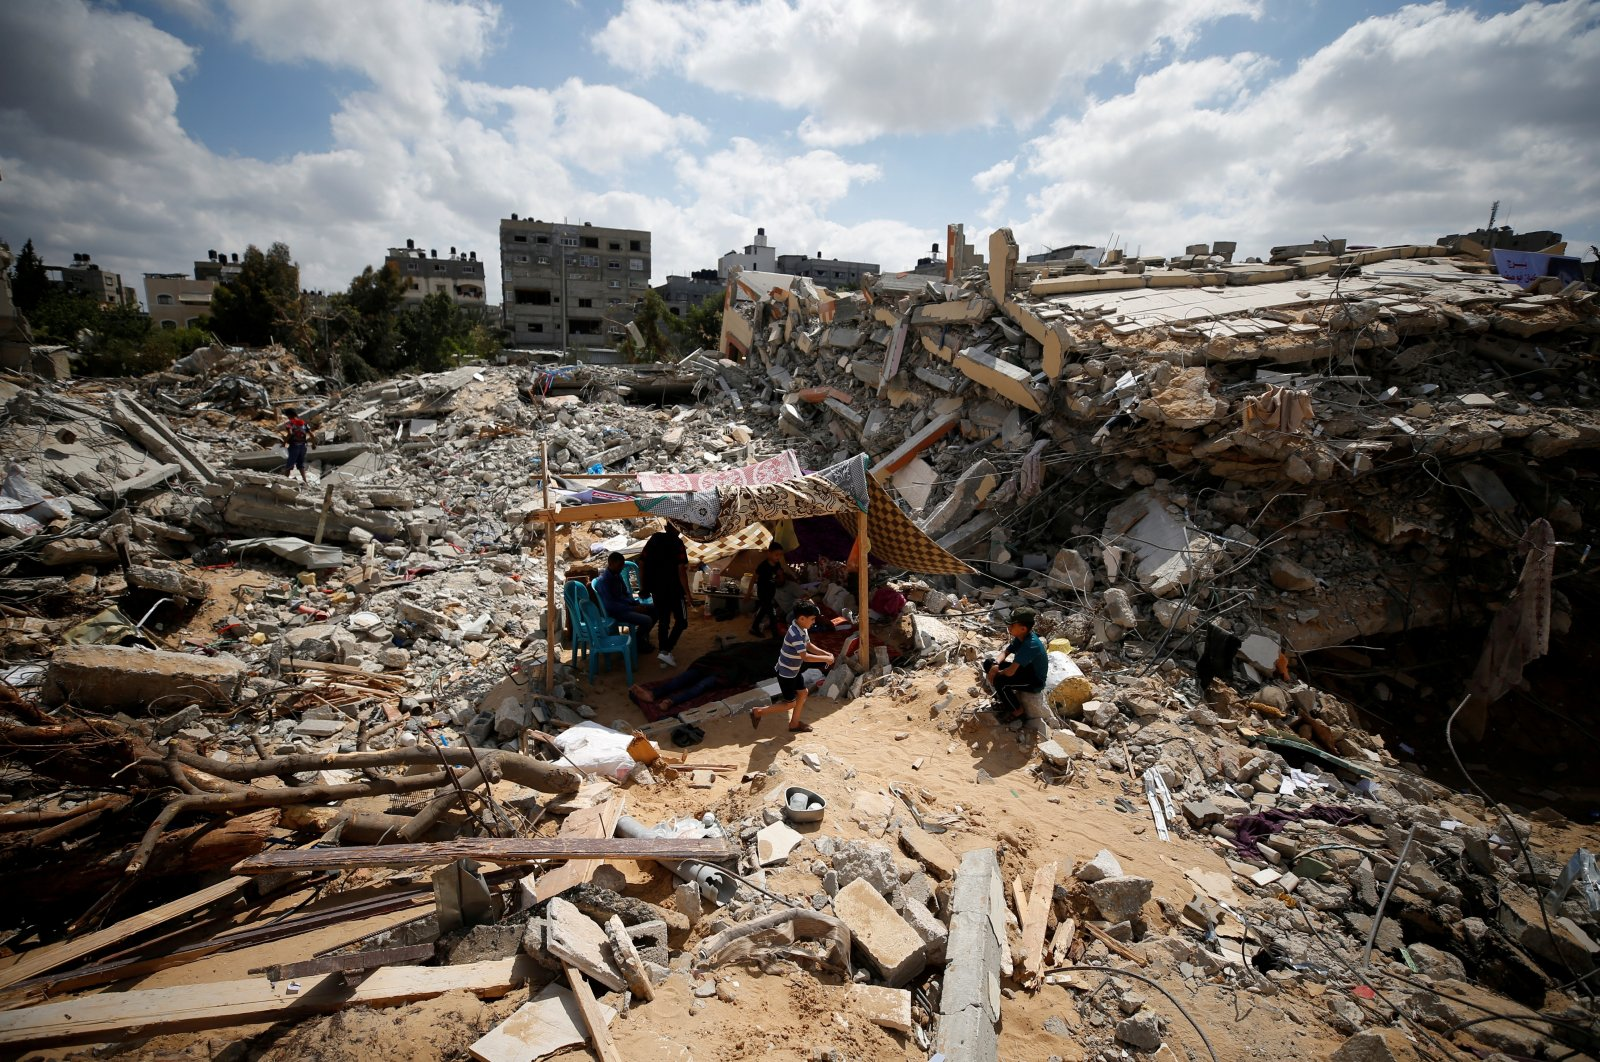 Palestinians sit in a makeshift tent amid the rubble of their houses that were destroyed by Israeli airstrikes during Israel's latest violence on the Gaza Strip, Palestine, May 23, 2021. (Reuters Photo)